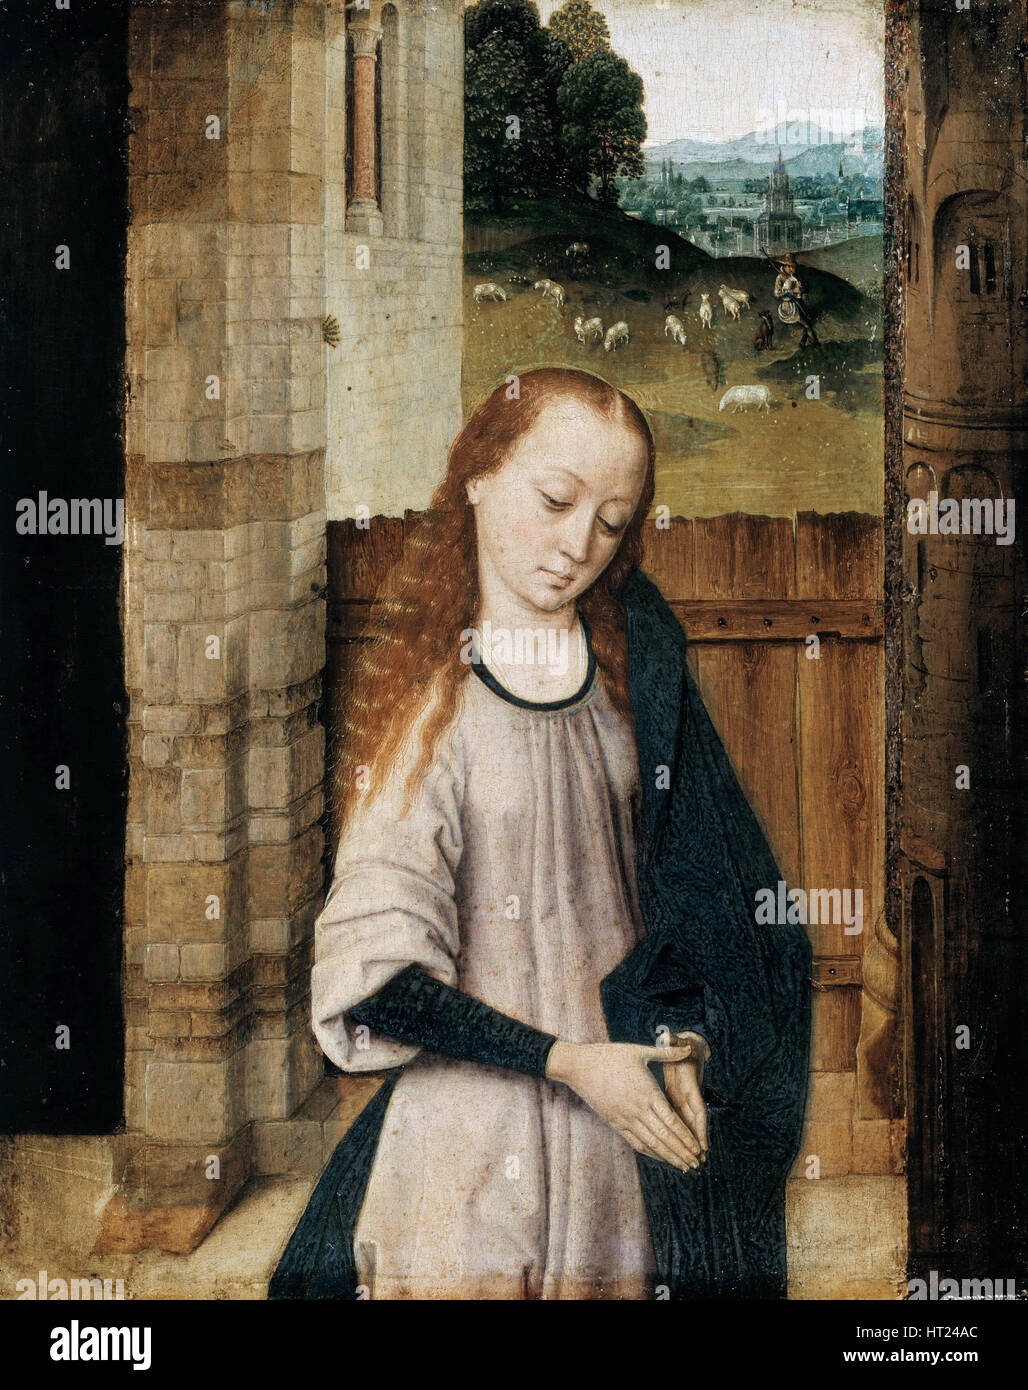 Virgin in Adoration, 15th century. Artist: Bouts, Dirk (1410/20-1475) - Stock Image